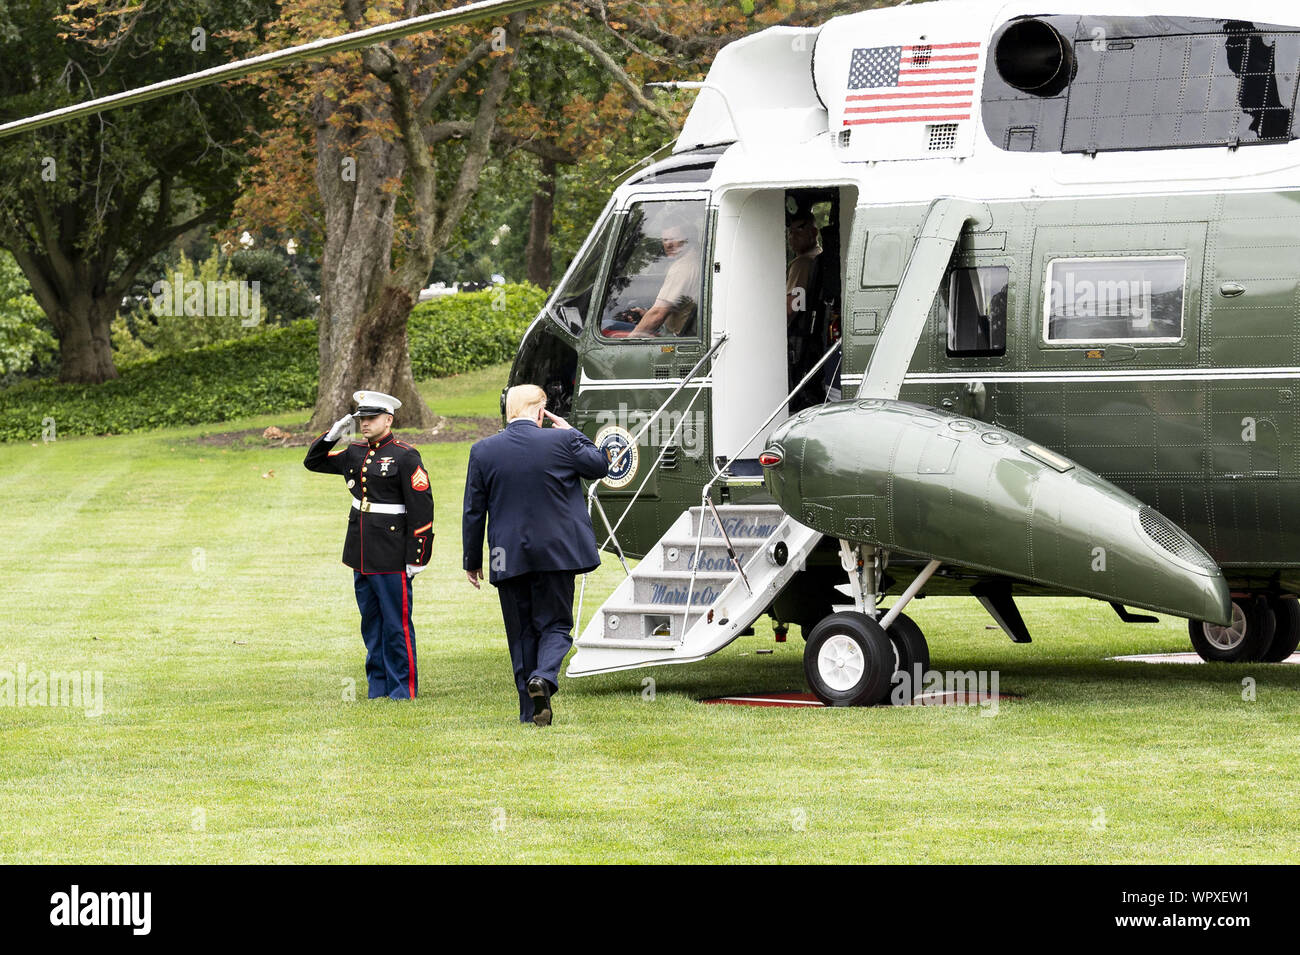 Washington, DC, USA. 9th Sep, 2019. September 9, 2019 - Washington, DC, United States: President DONALD TRUMP leaving the White House on Marine One from the South Lawn of the White House to go to a rally in North Carolina. Credit: Michael Brochstein/ZUMA Wire/Alamy Live News Stock Photo